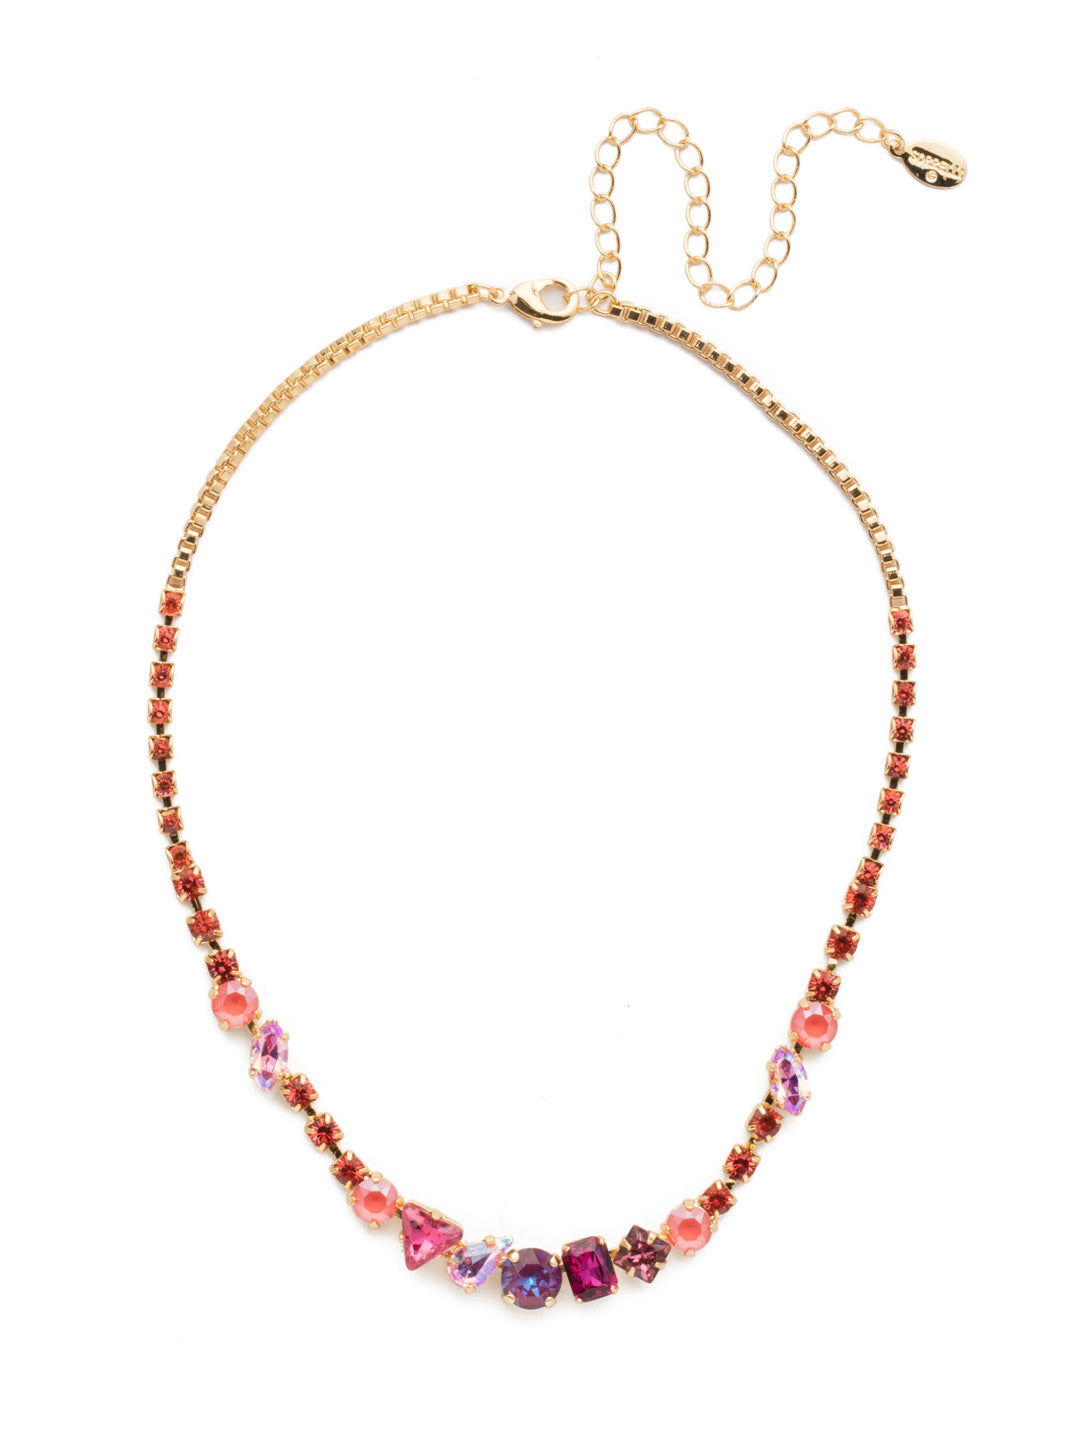 Sonja Tennis Necklace - NEN12BGBGA